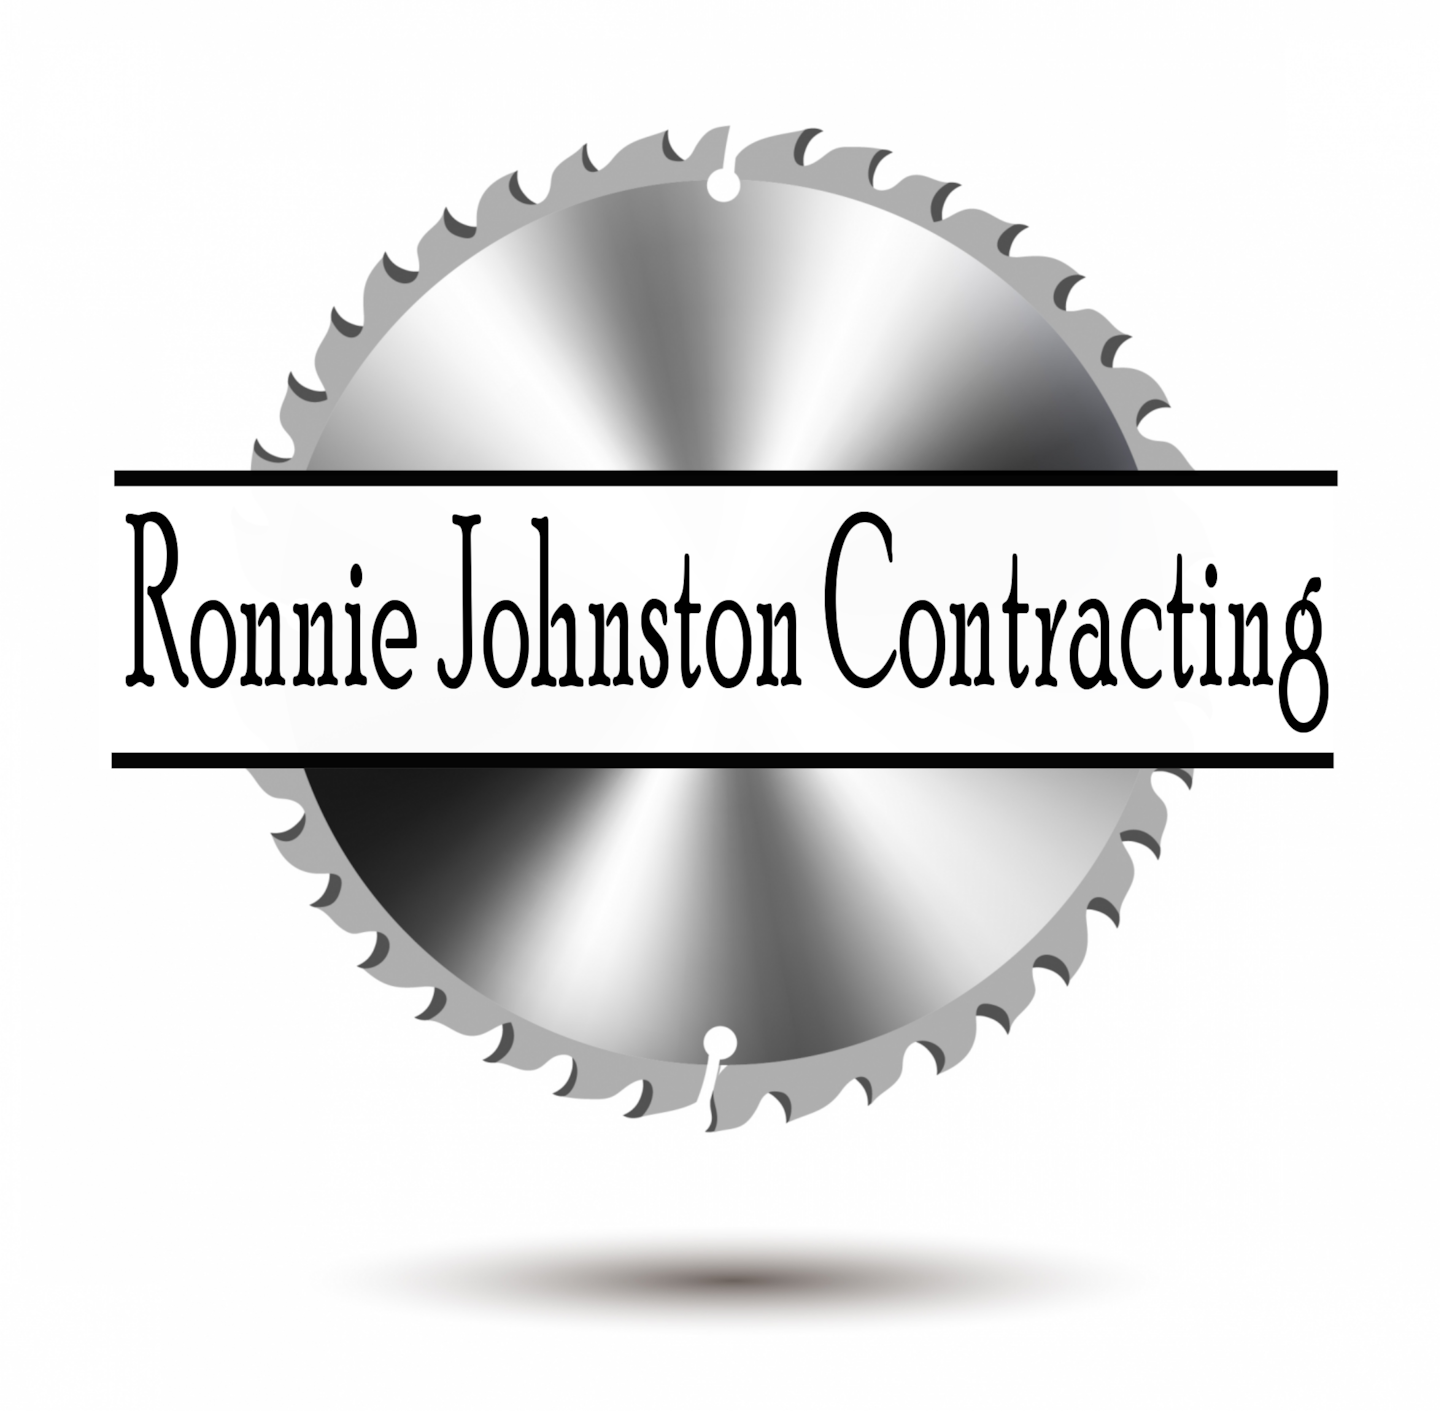 Ronnie Johnston Contracting